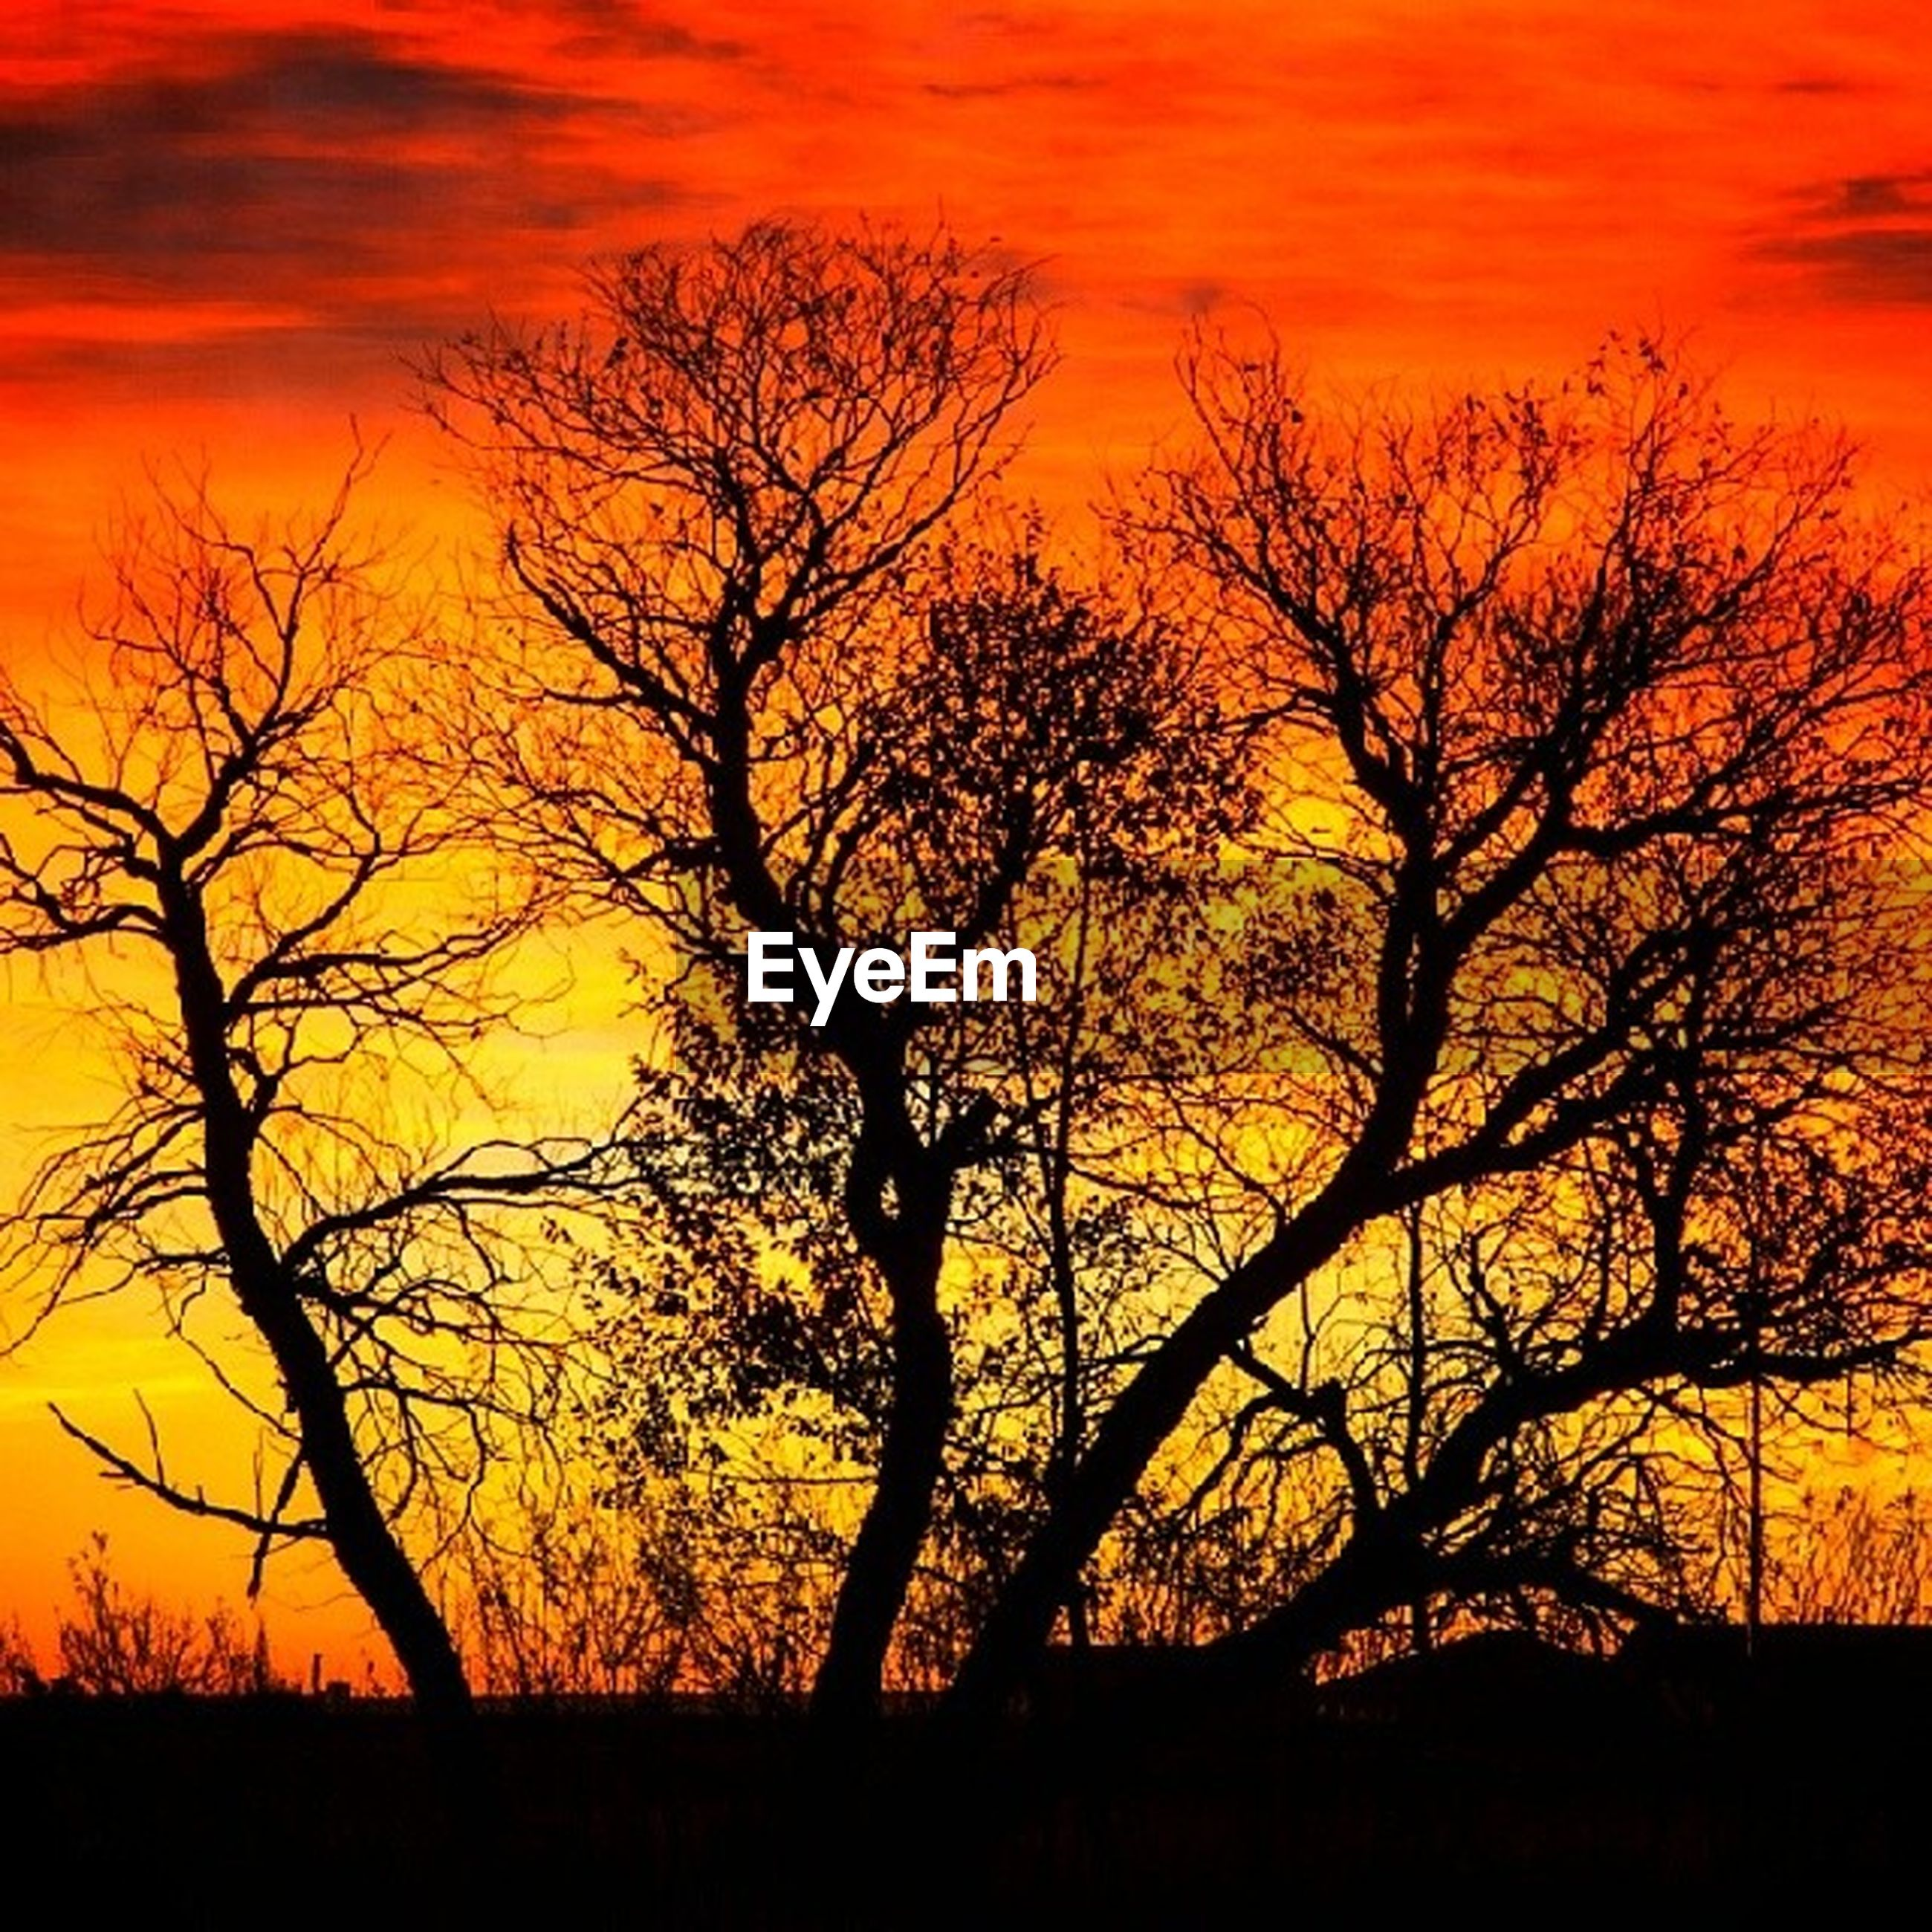 sunset, bare tree, orange color, silhouette, tree, scenics, tranquil scene, tranquility, beauty in nature, branch, sky, nature, idyllic, landscape, dramatic sky, majestic, non-urban scene, outdoors, yellow, no people